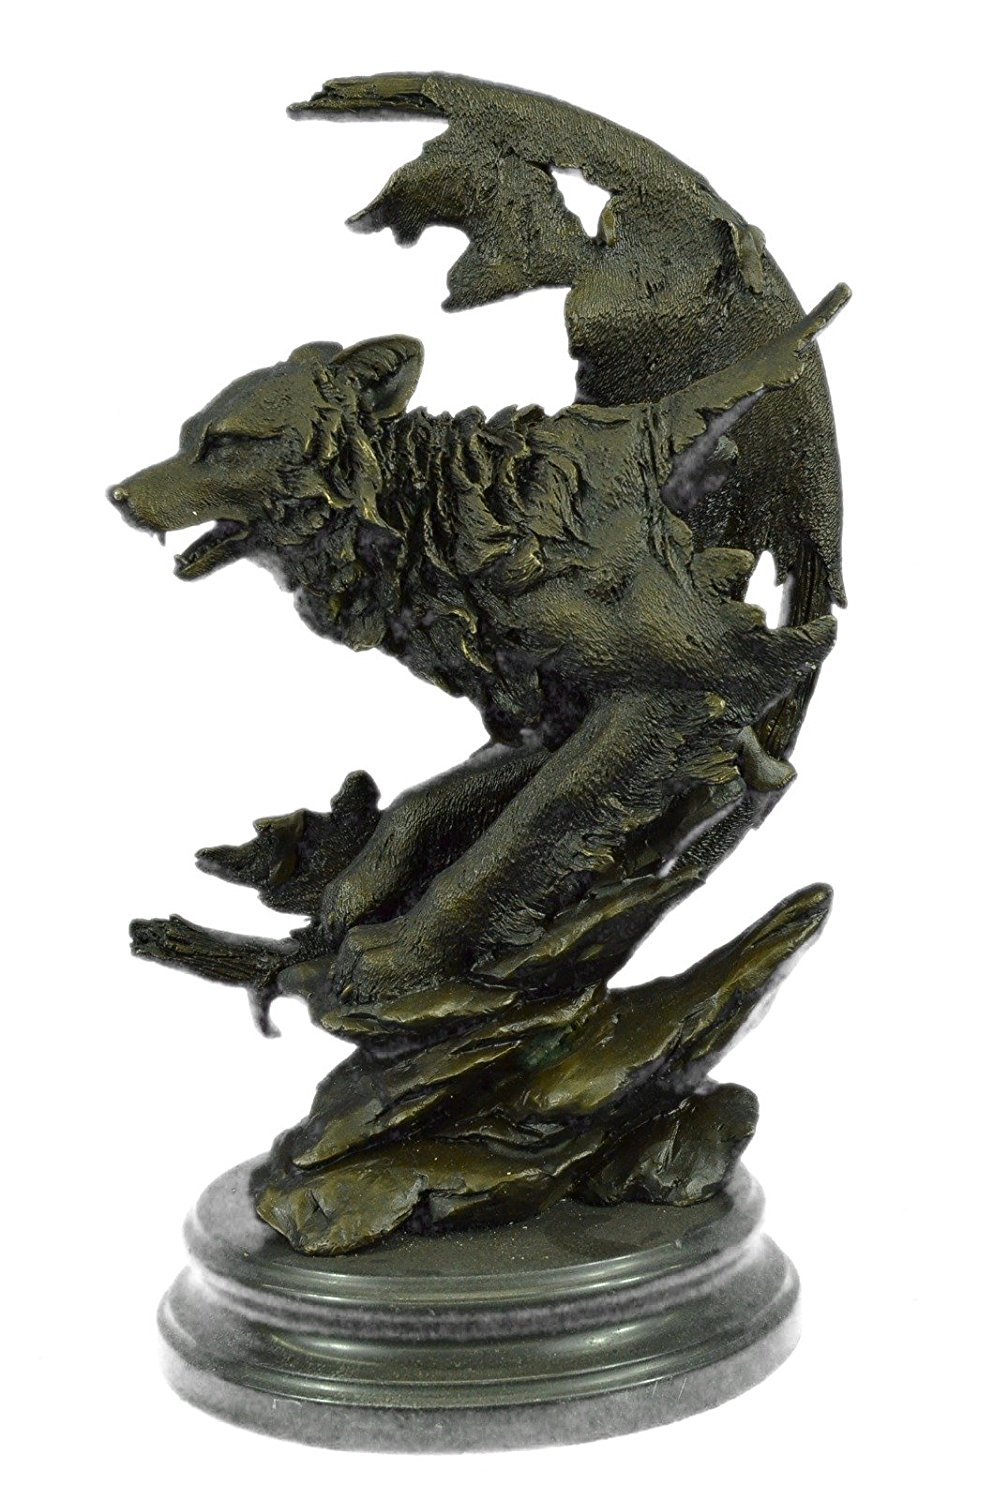 ...Handmade...European Bronze Sculpture Celtic Moon Wolf Hot Cast Marble Base (1X-YDW-119) Bronze Sculpture Statues Figurine Nude Office & Home Décor Collectibles Sale Deal Gifts